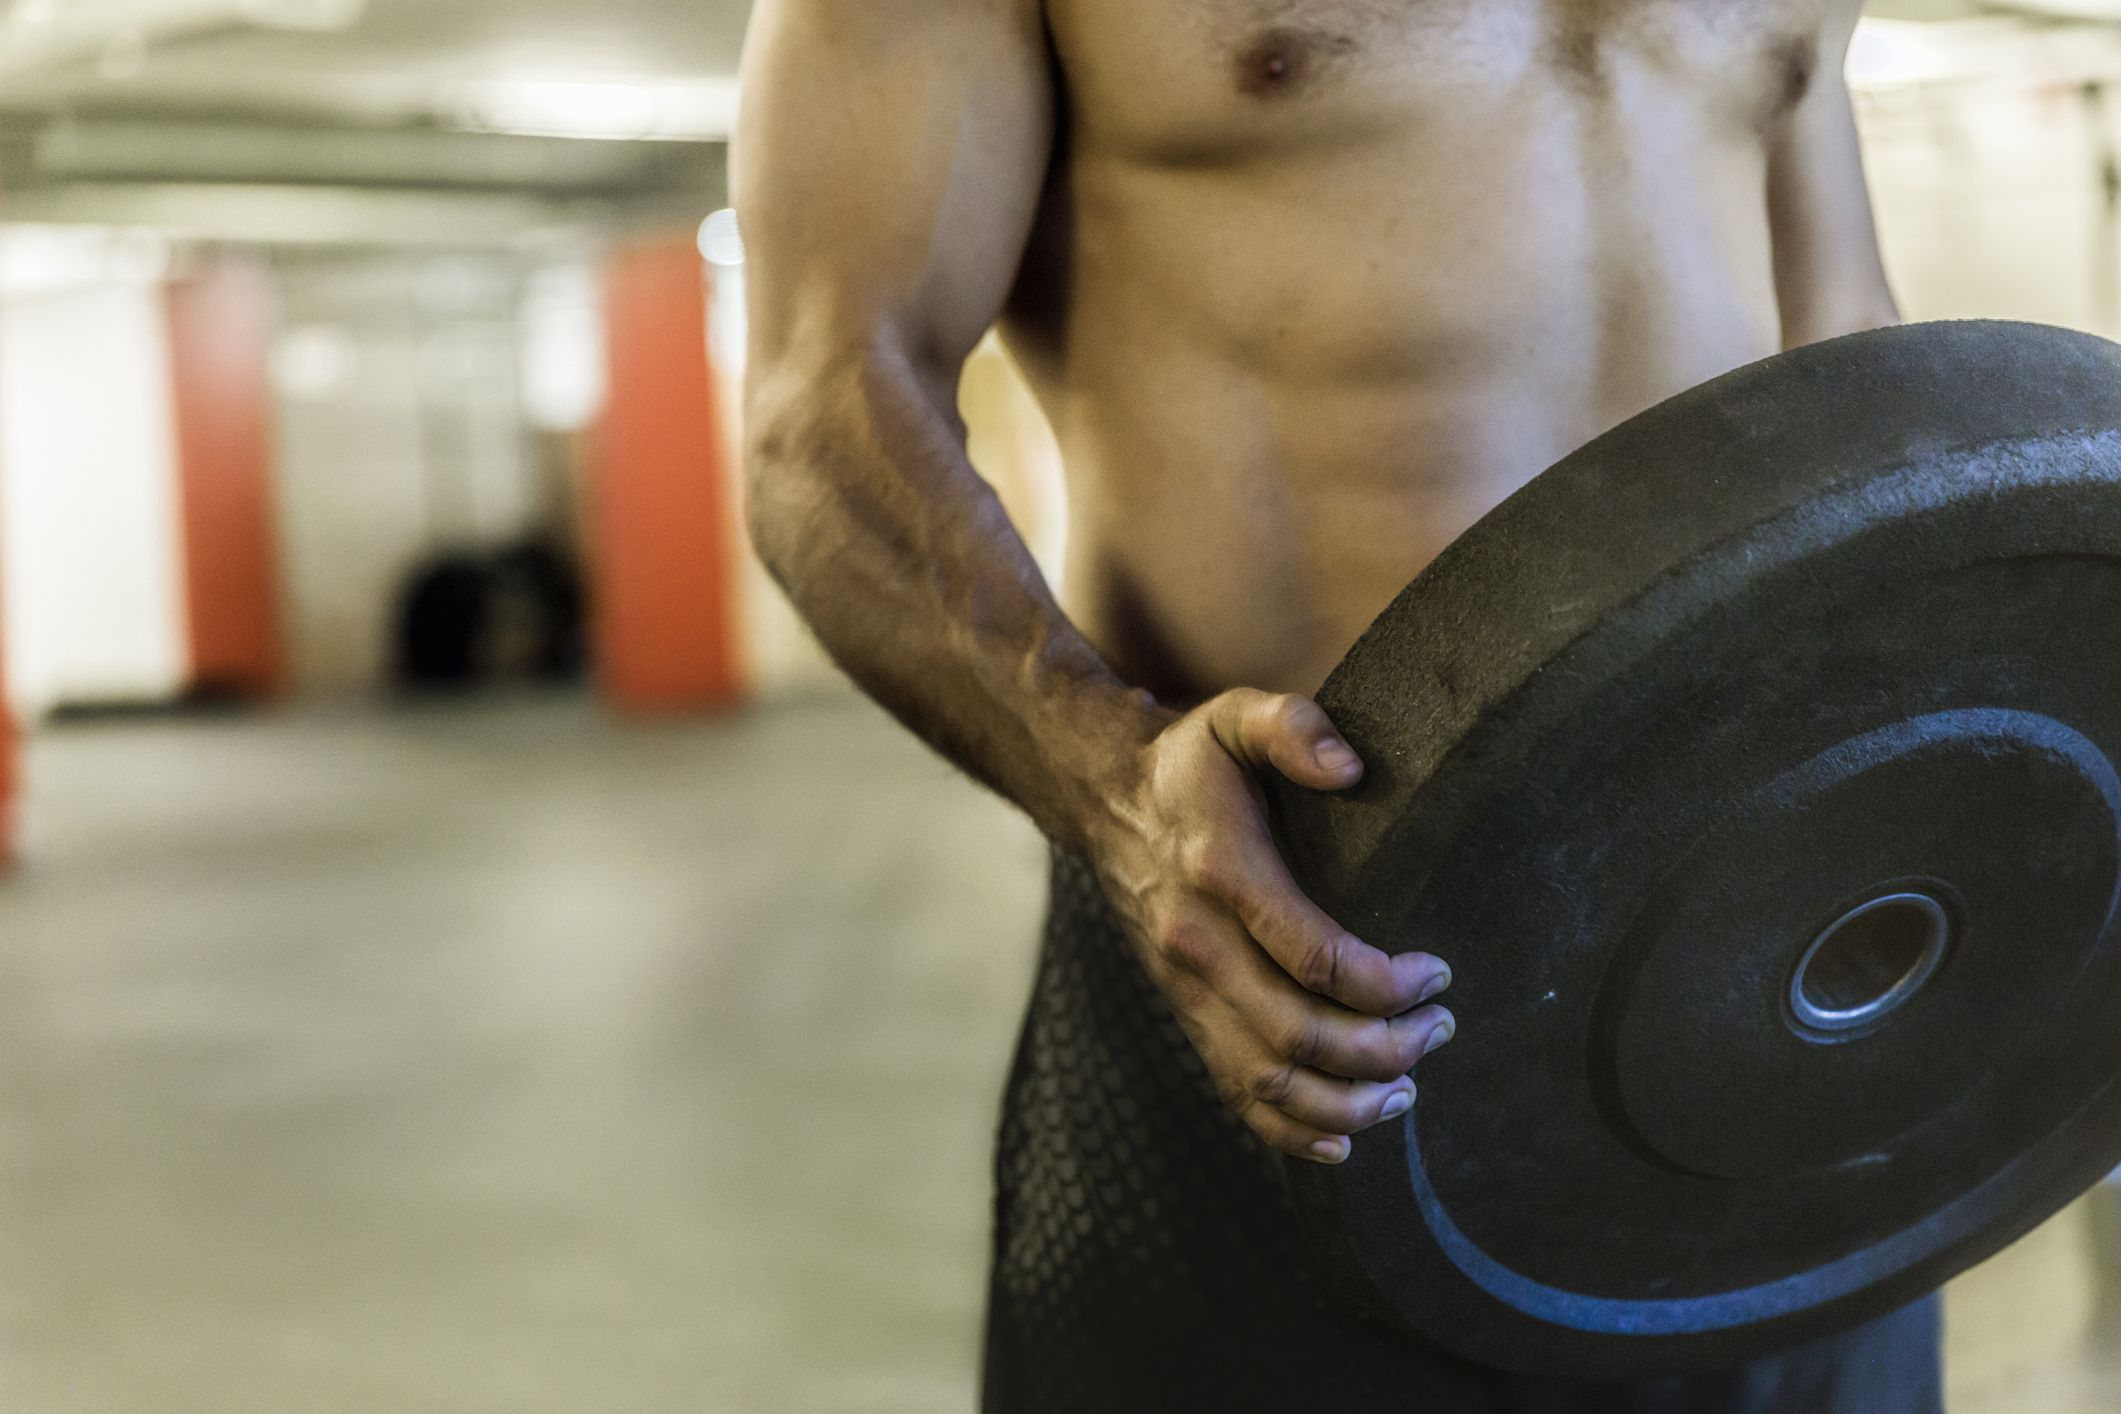 This Full-Body Plate Workout Is an Absolute Killer